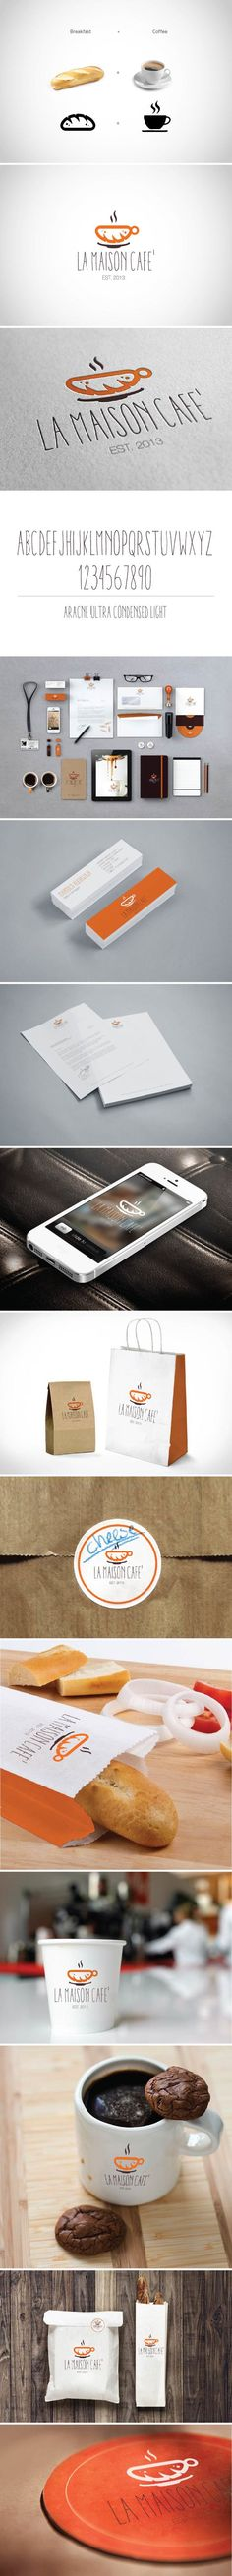 La Maison Cafe' by Mahmoud Alkhawaja, via Behance #cafe #identity #packaging #branding PD